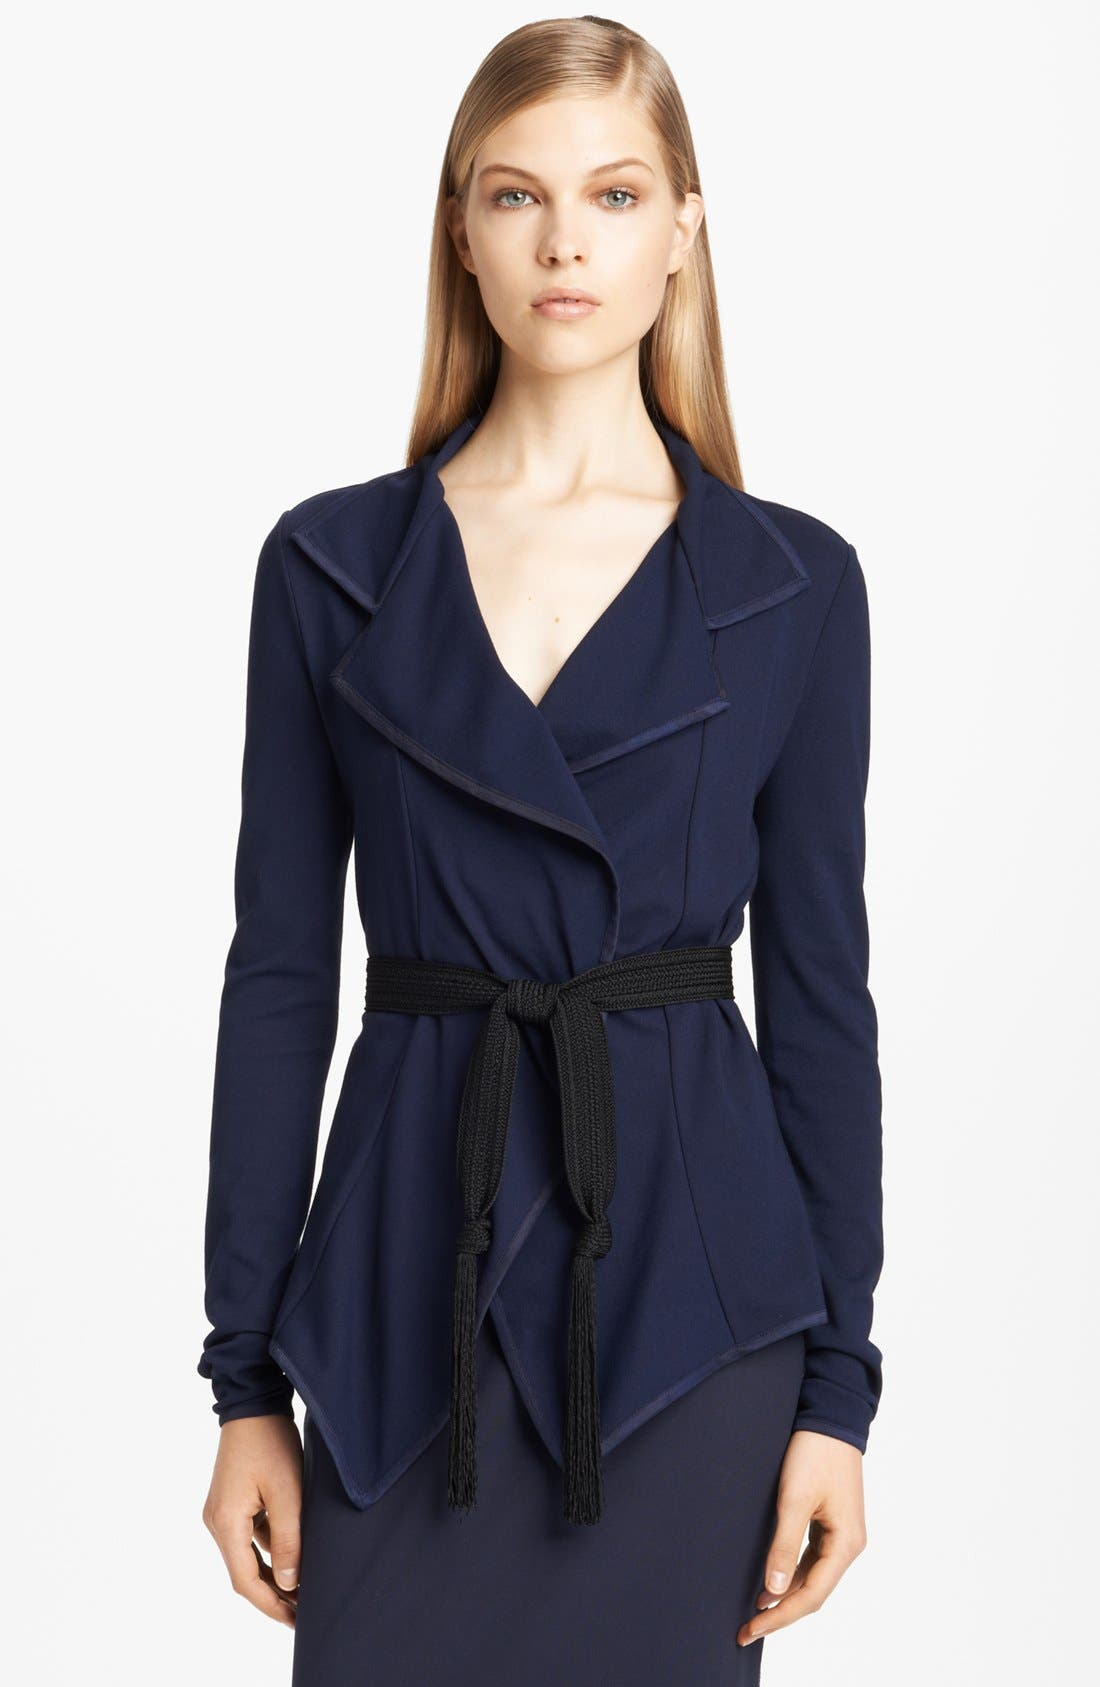 Alternate Image 1 Selected - Donna Karan Collection Lightweight Structured Jersey Jacket